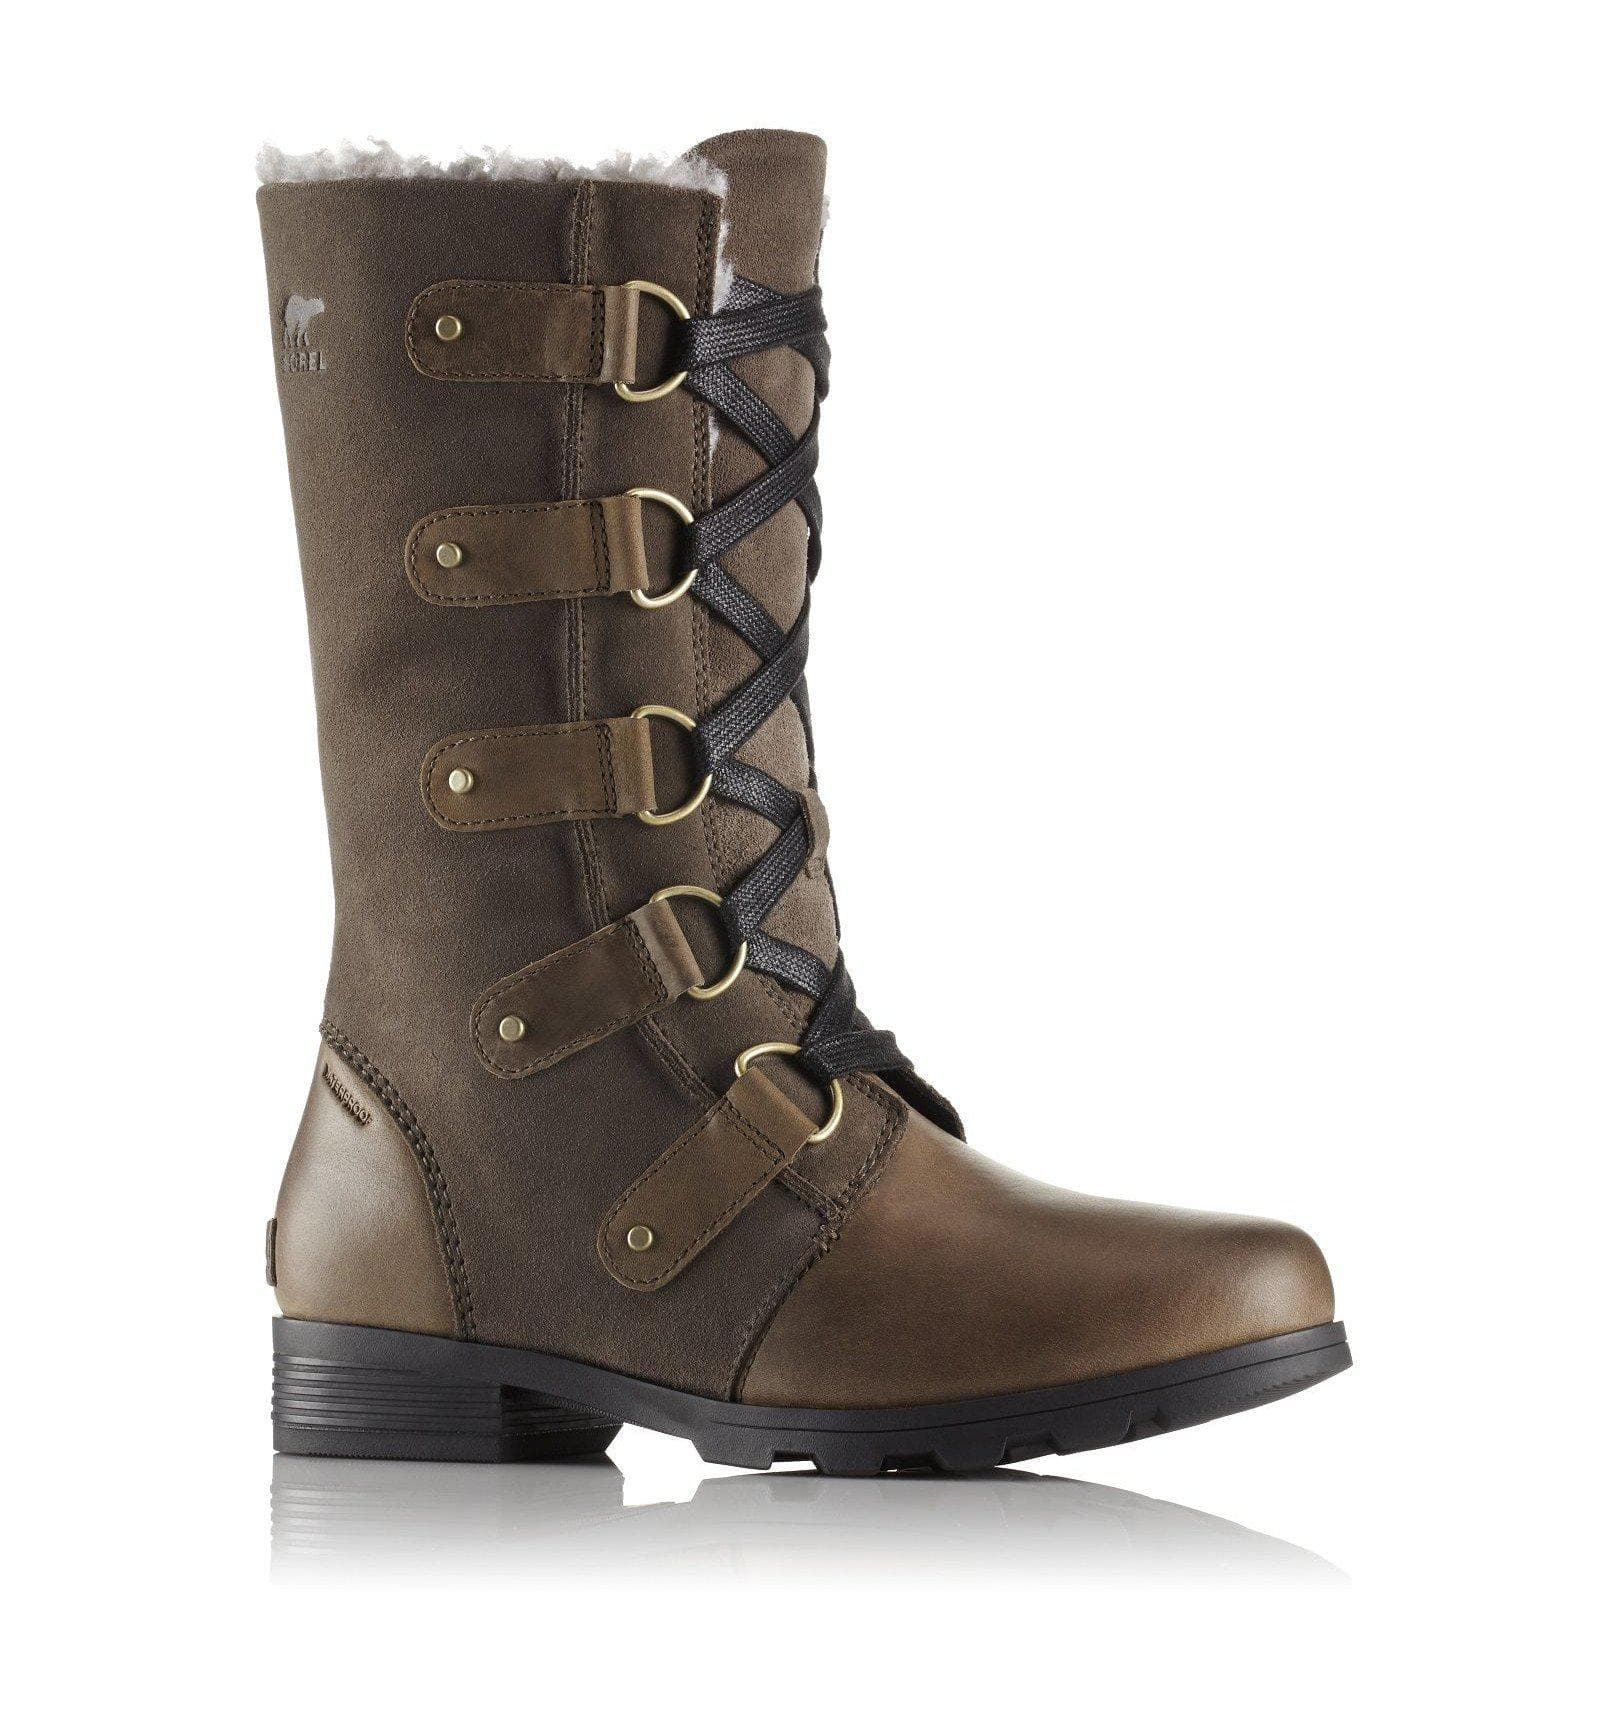 Sorel Emelie Lace Ladies Boot 2018